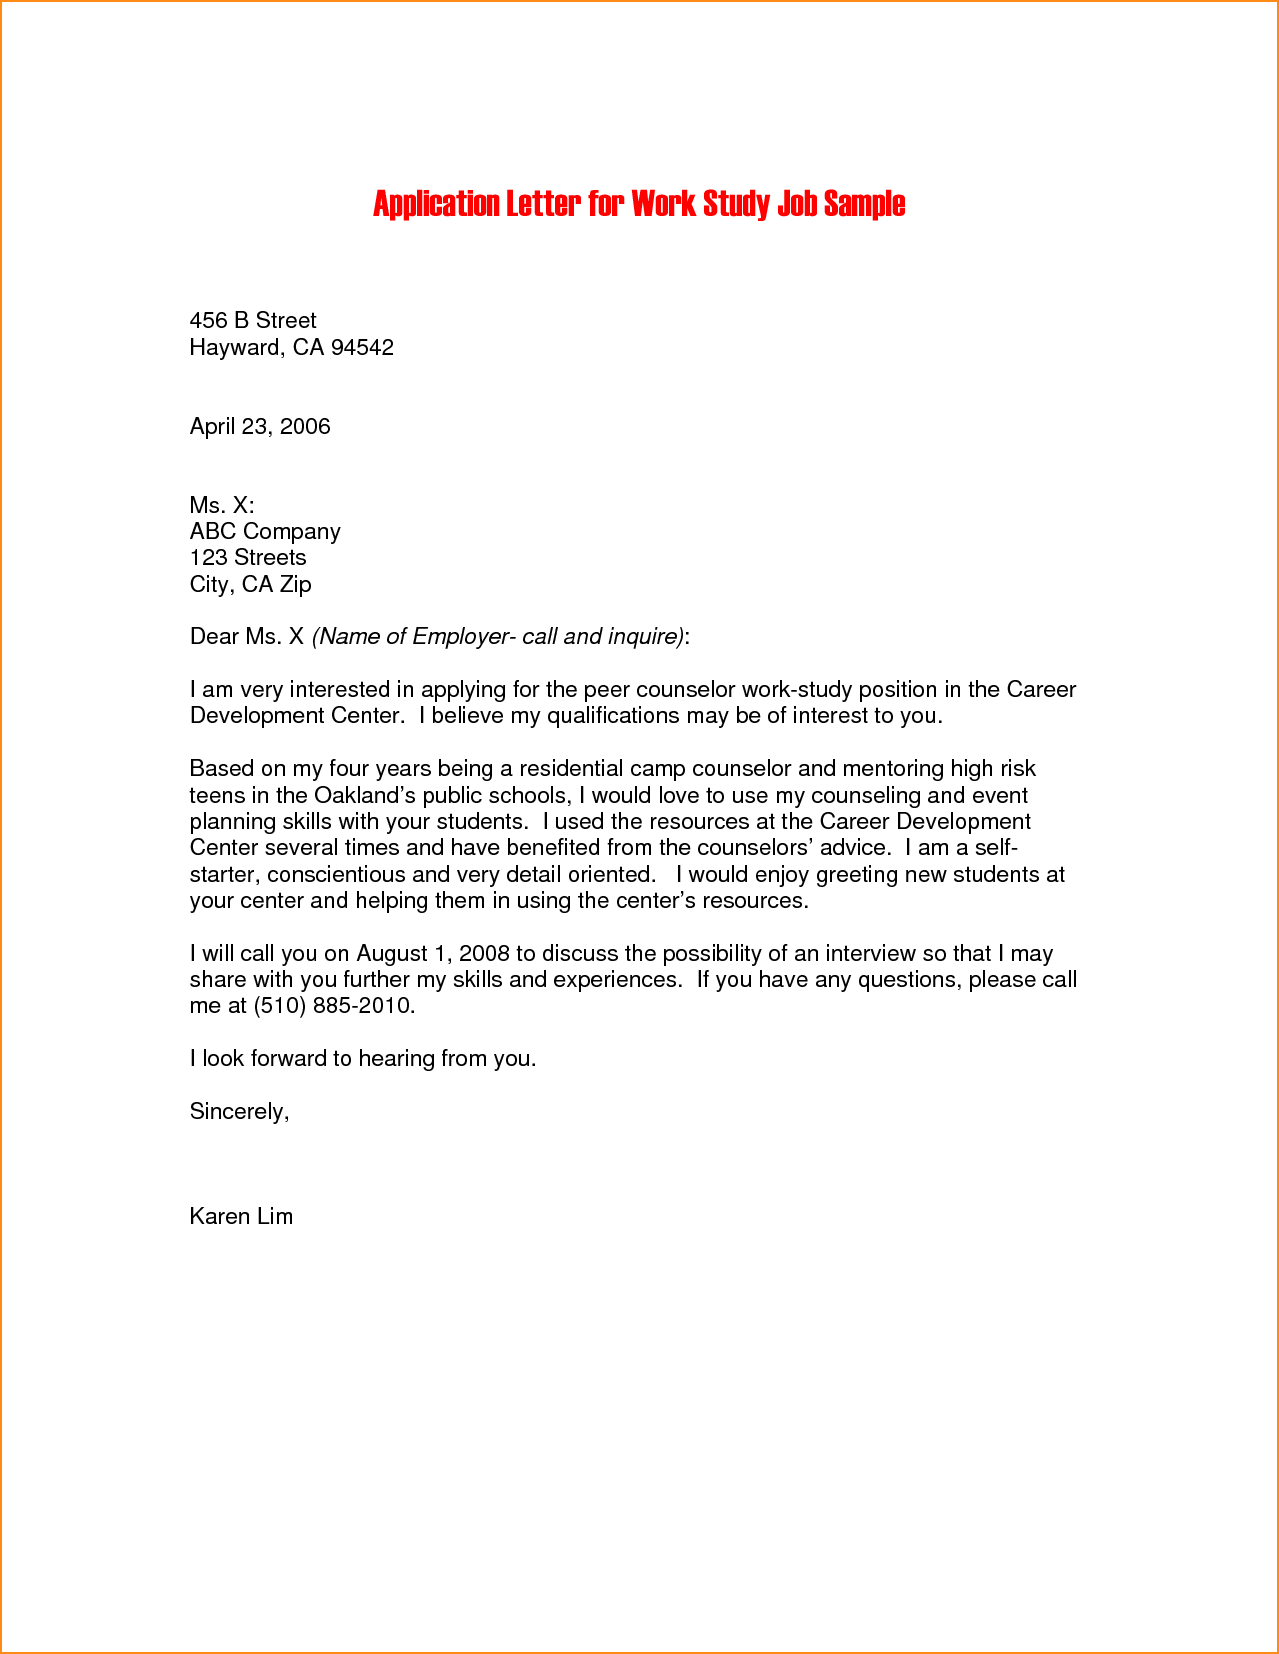 Internship Application Letter Sample Pdf Basic Job Appication